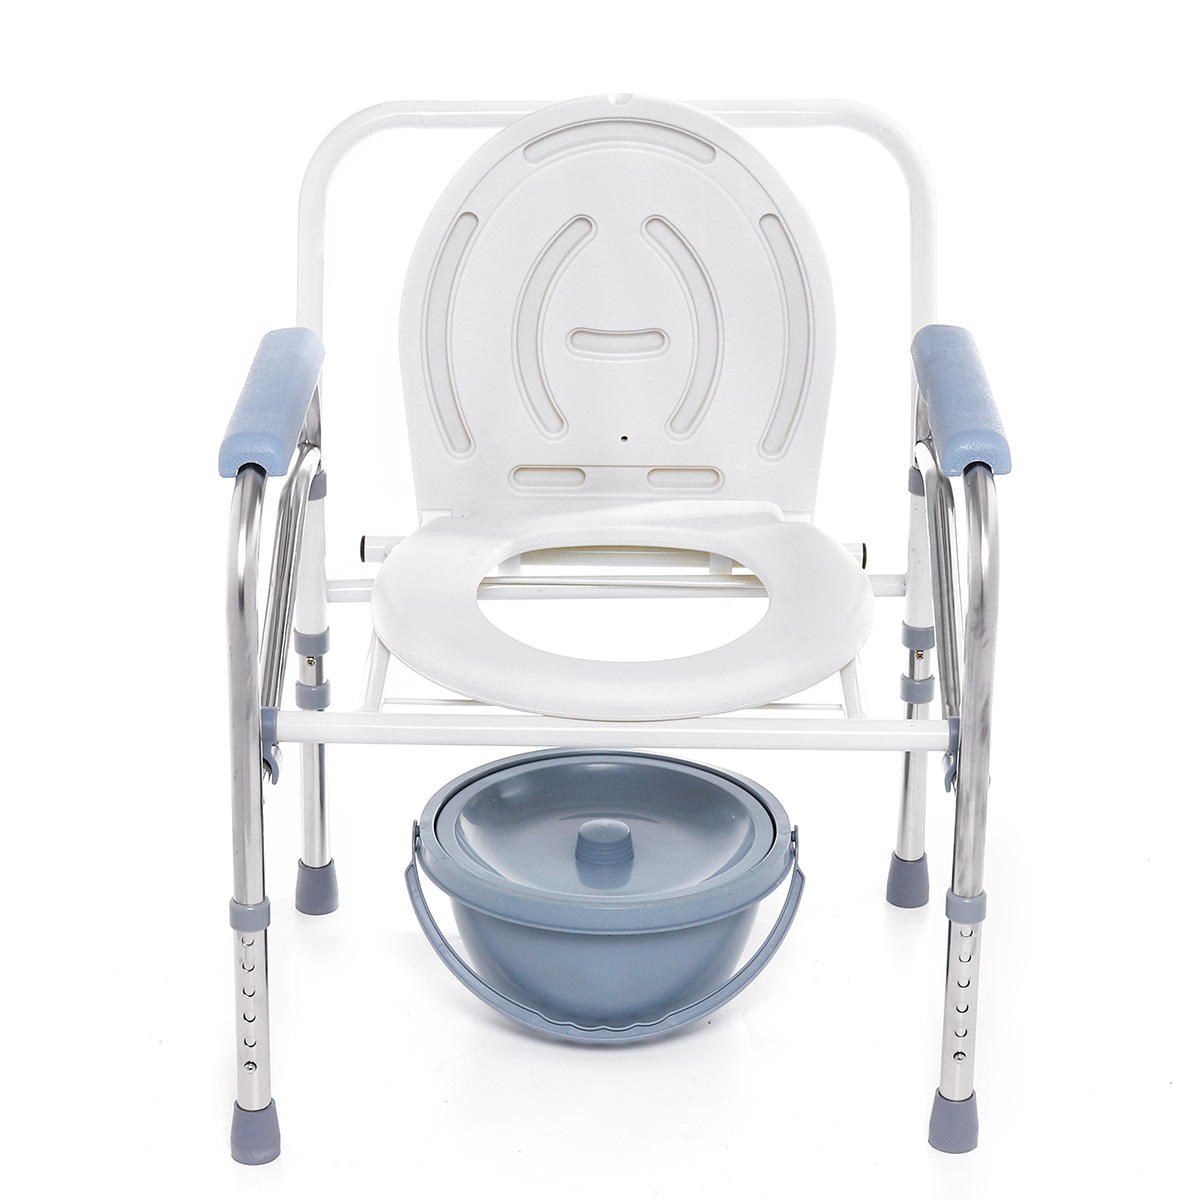 Tremendous Portable Foldable Potty Chair Toilet Adjustable Commode Chair Closestool Chamber Pot For Elderly Women Pabps2019 Chair Design Images Pabps2019Com